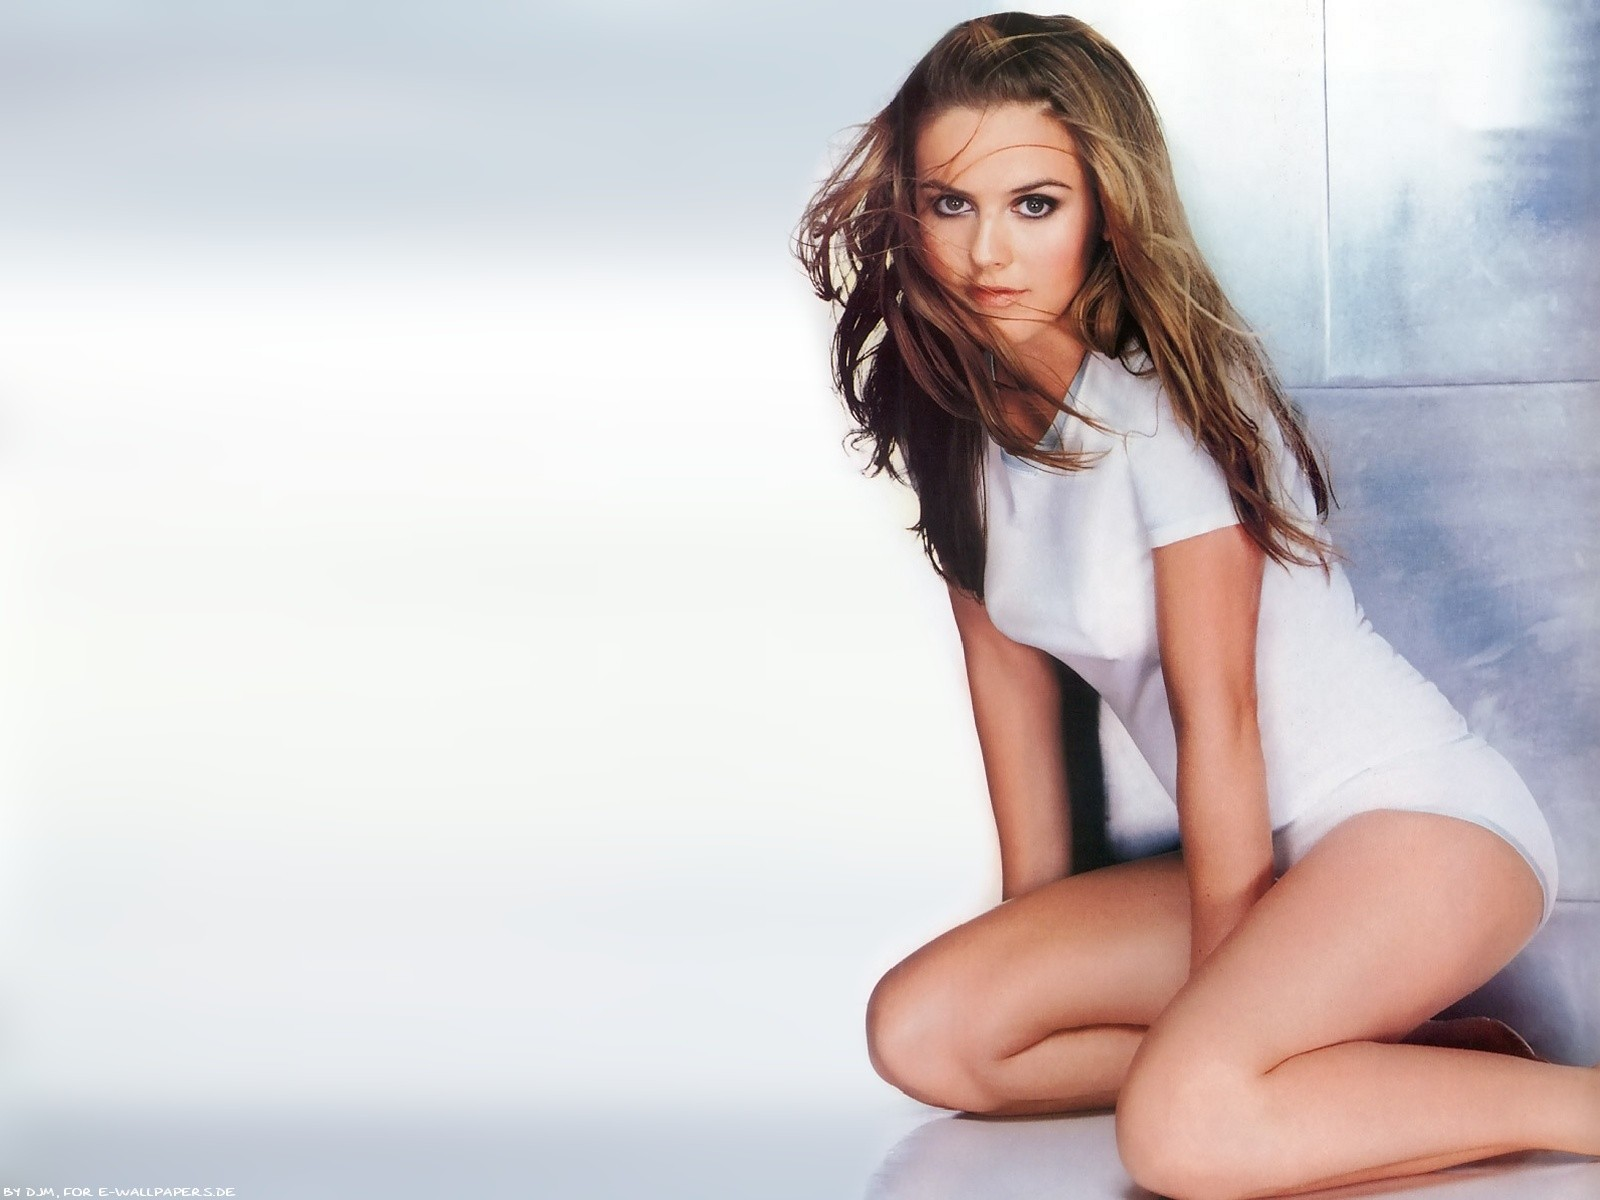 Alicia Silverstone Desktop wallpaper